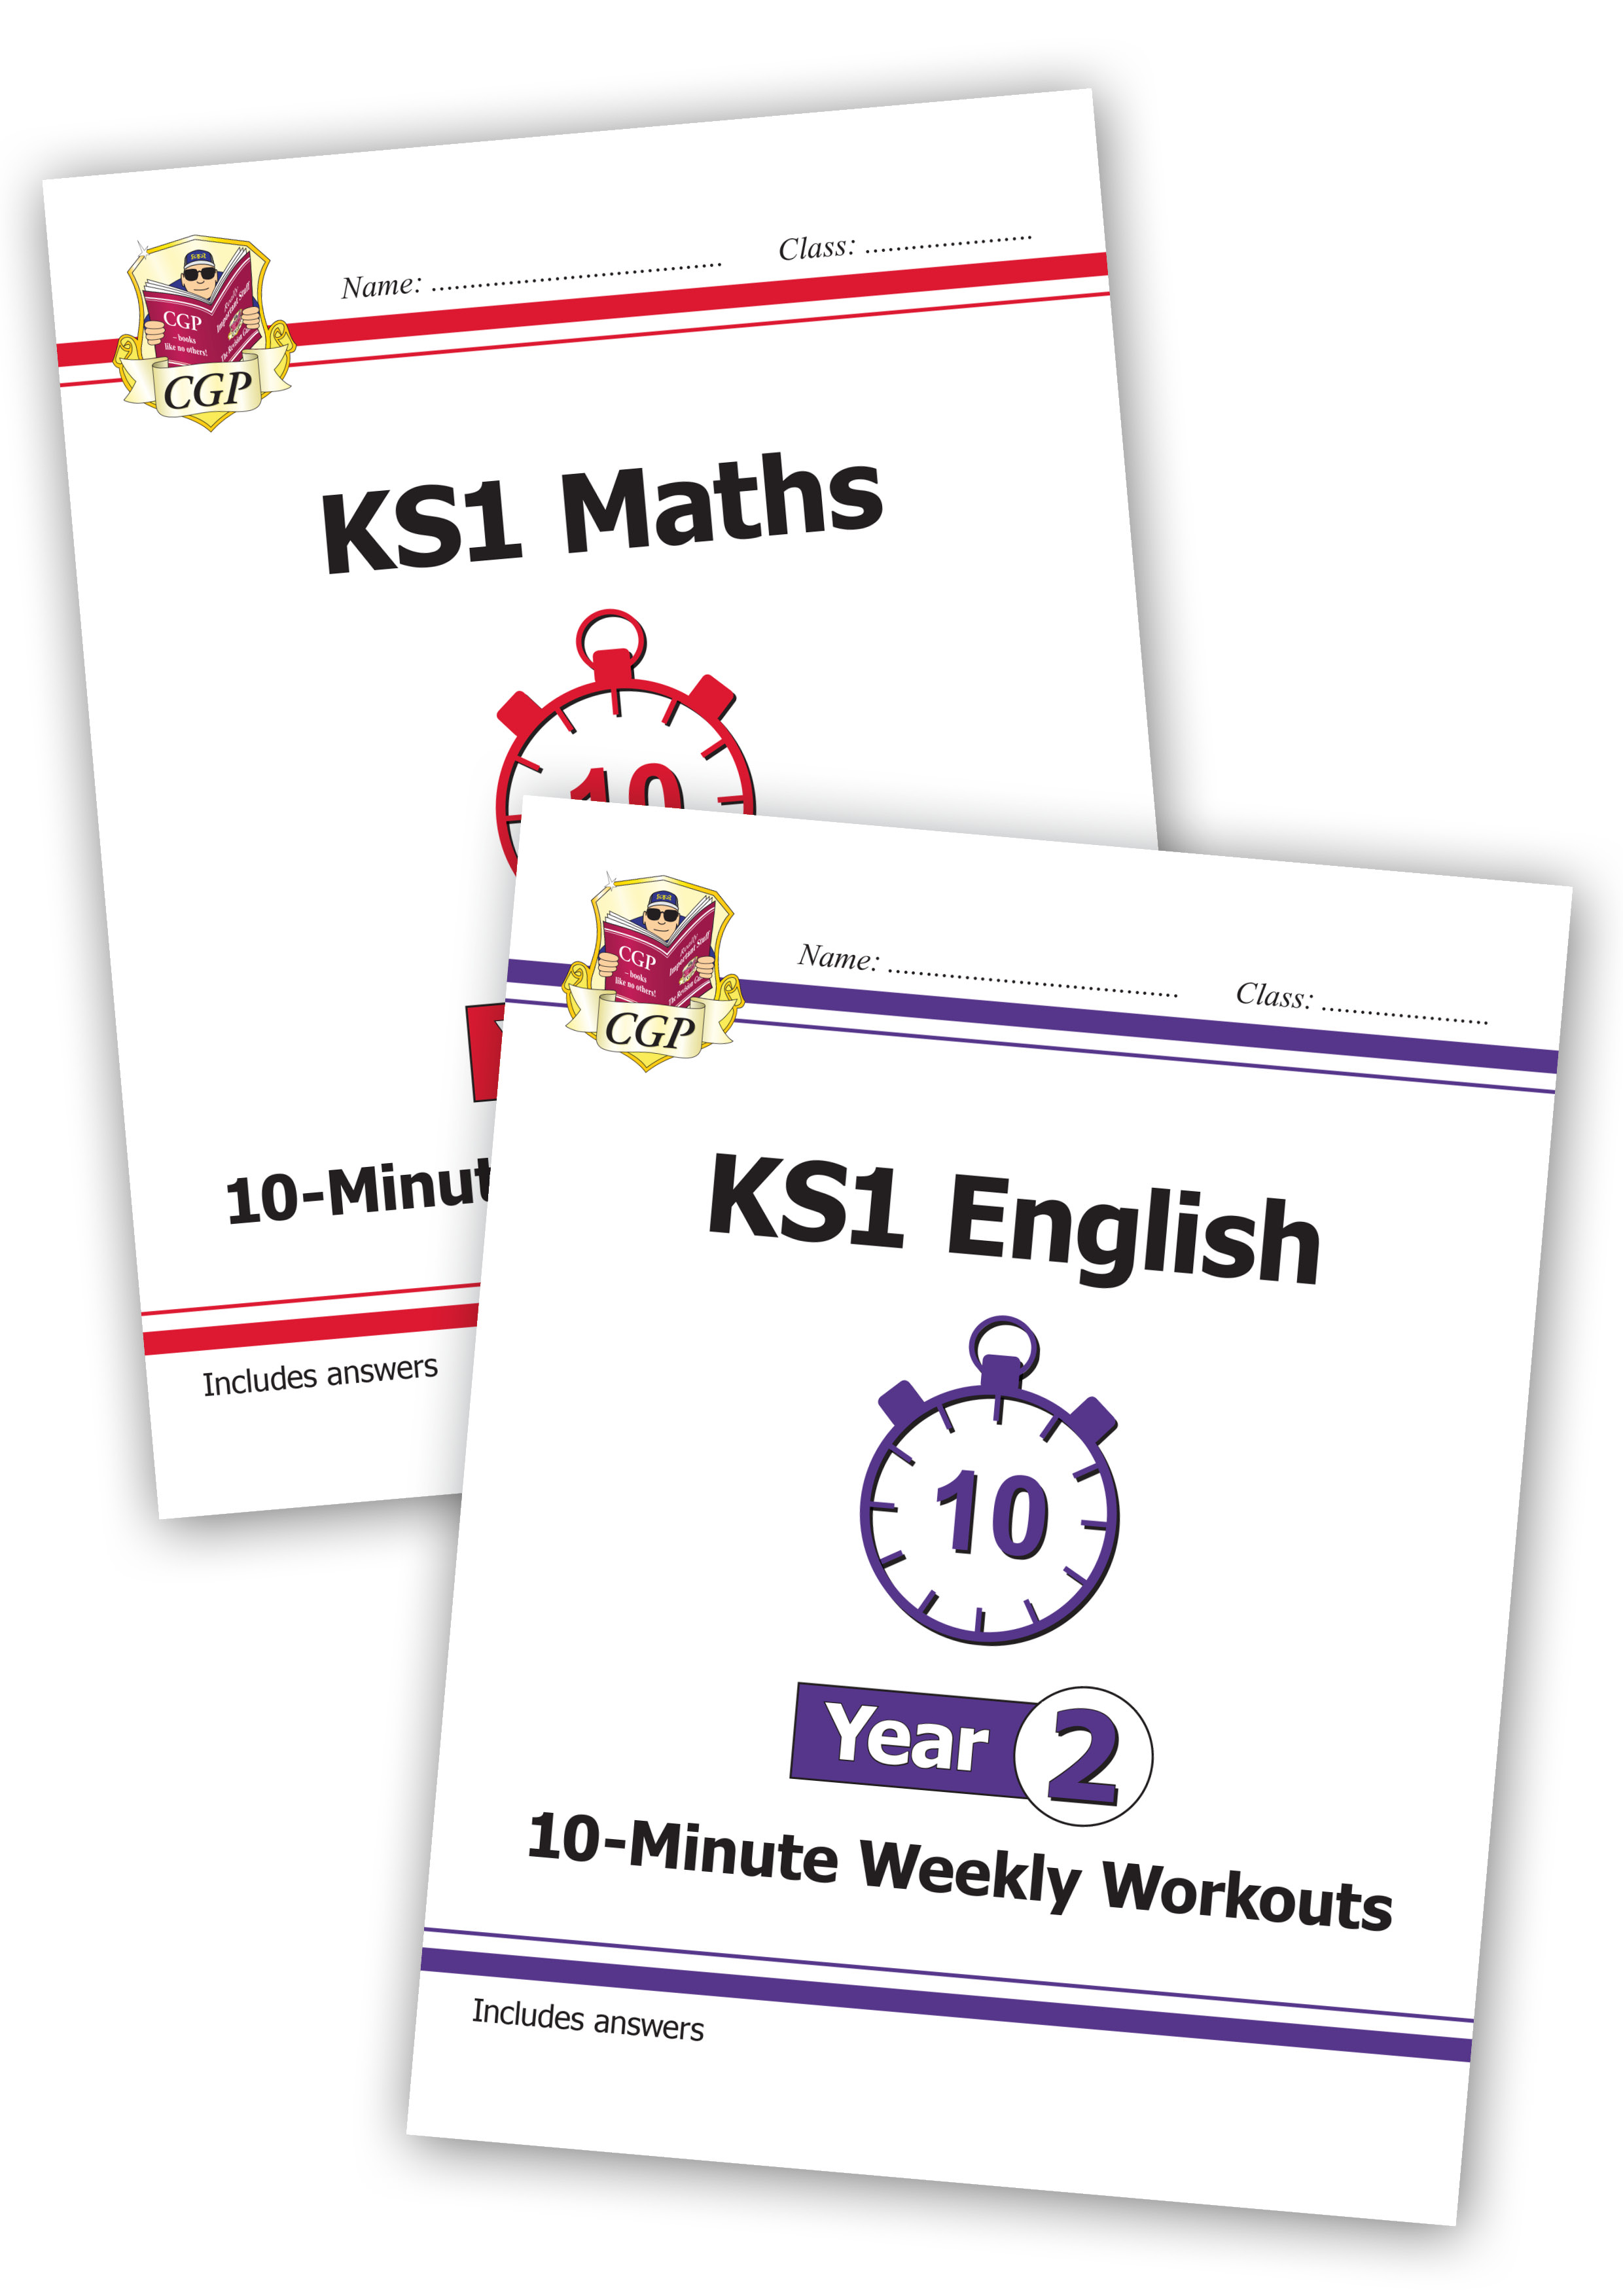 EM2XWB11 - New KS1 Maths and English 10-Minute Weekly Workouts Bundle - Year 2